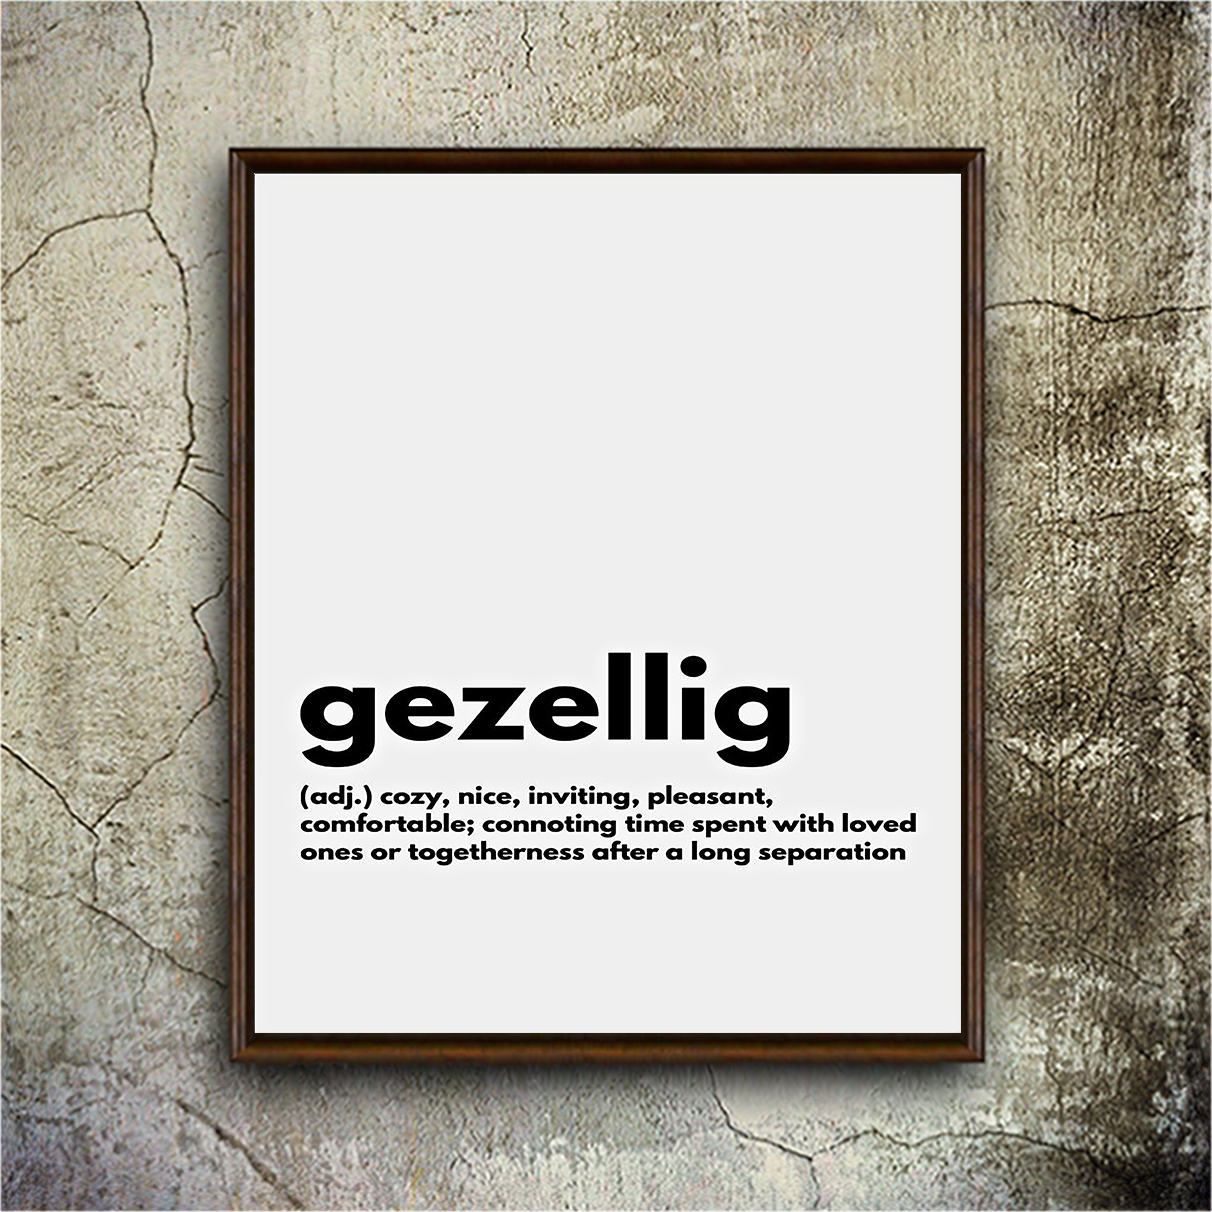 Gezellig definition cozy nice inviting poster A3